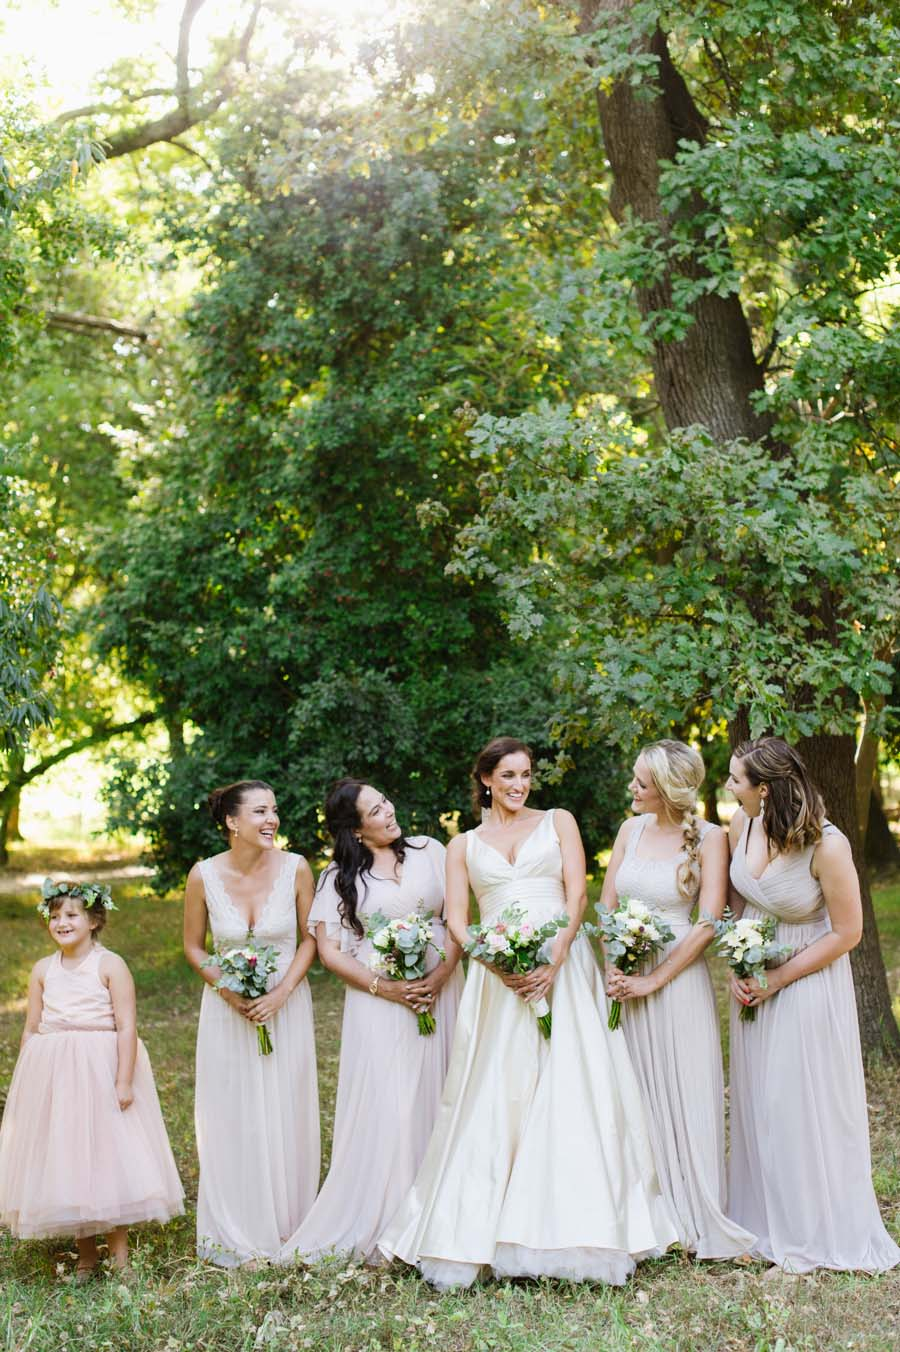 Rustic Luxe Forest Wedding With Pretty Pastels0060